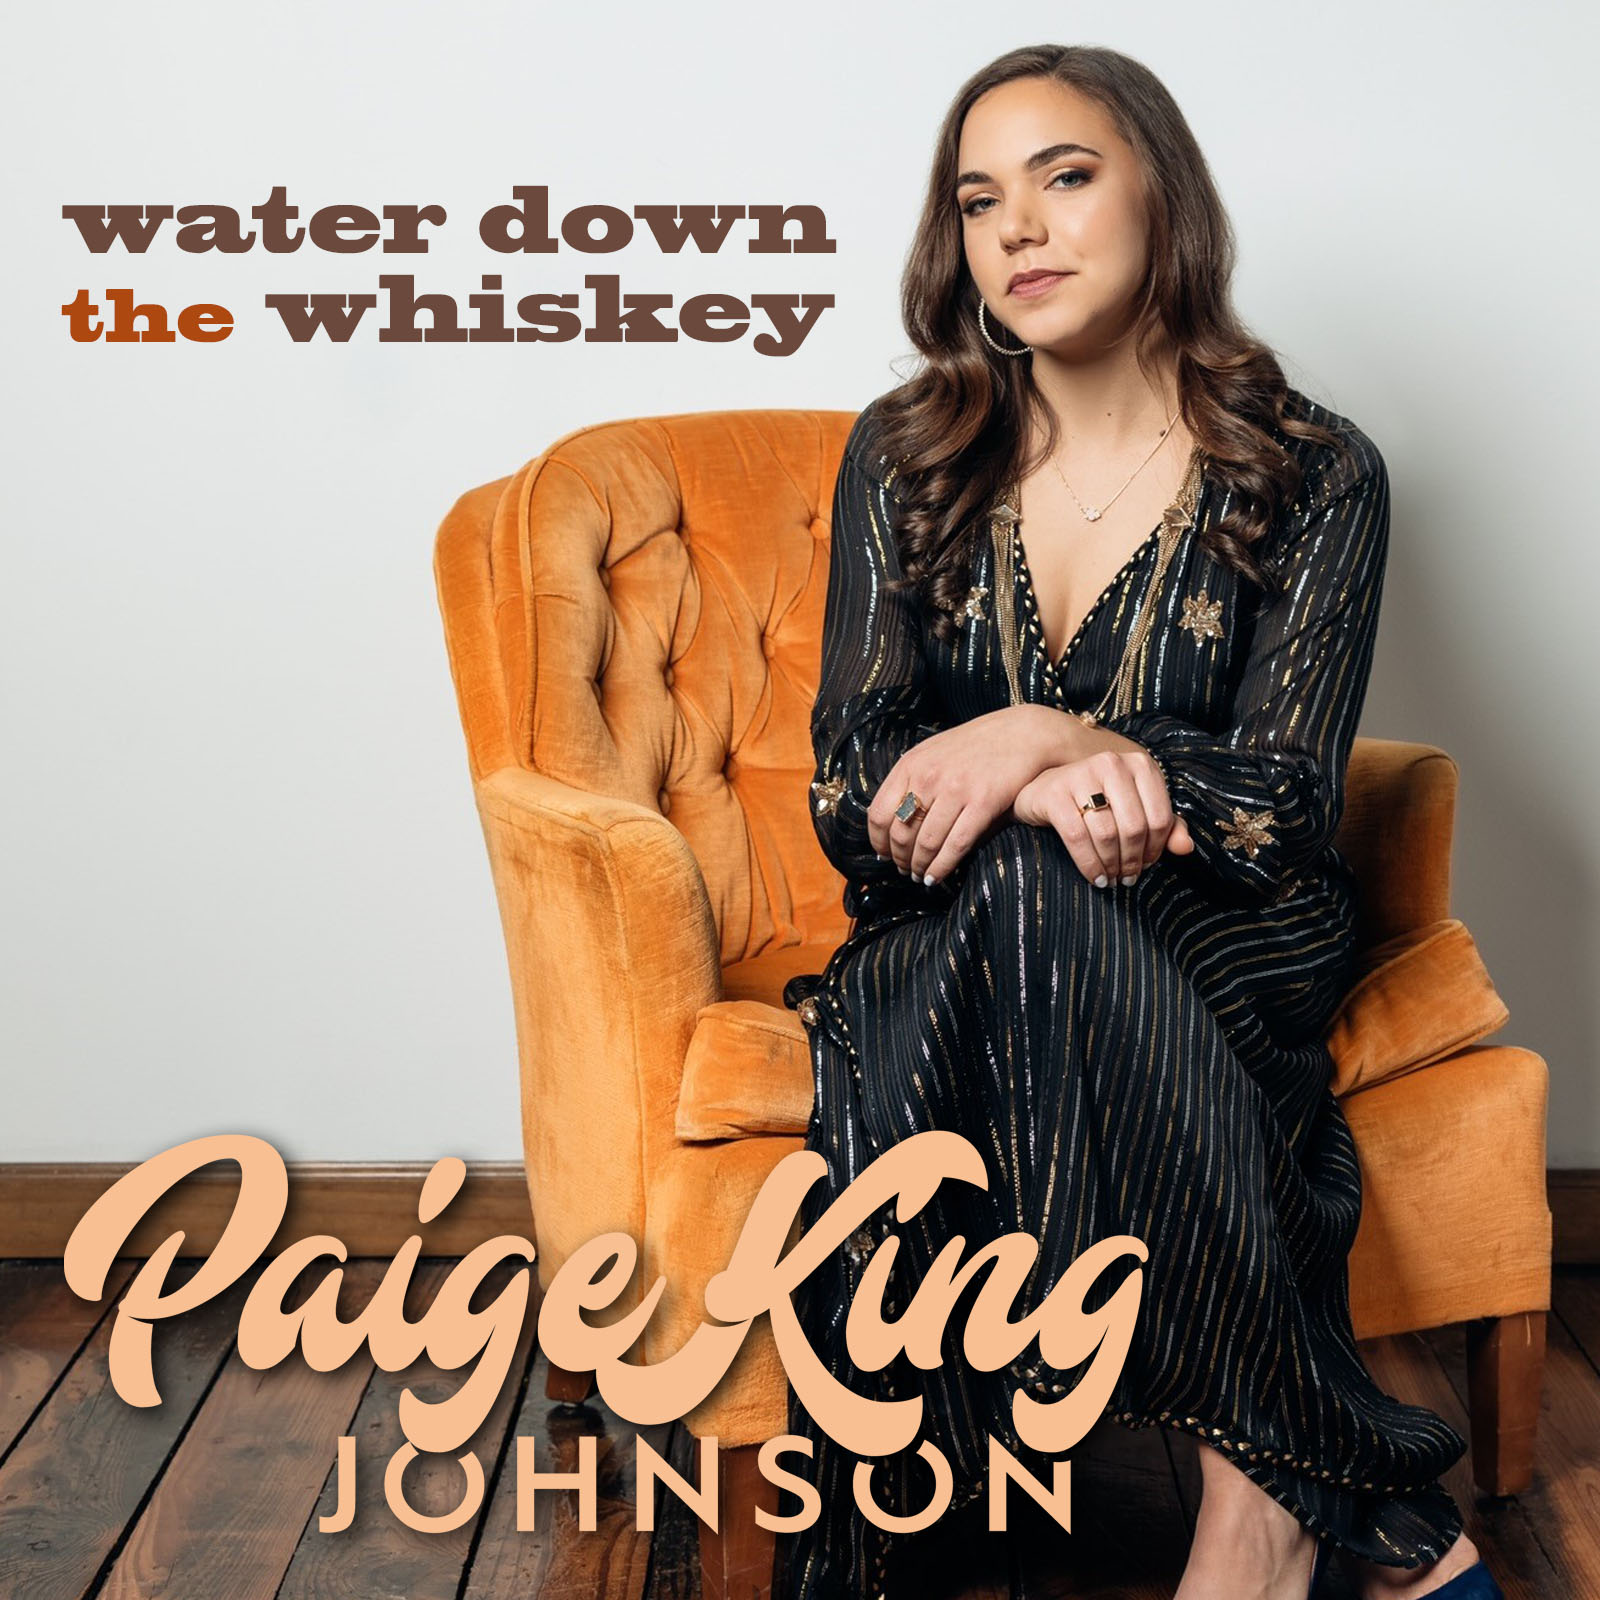 Paige-King-Johnson-Water-Down-the-Whiskey